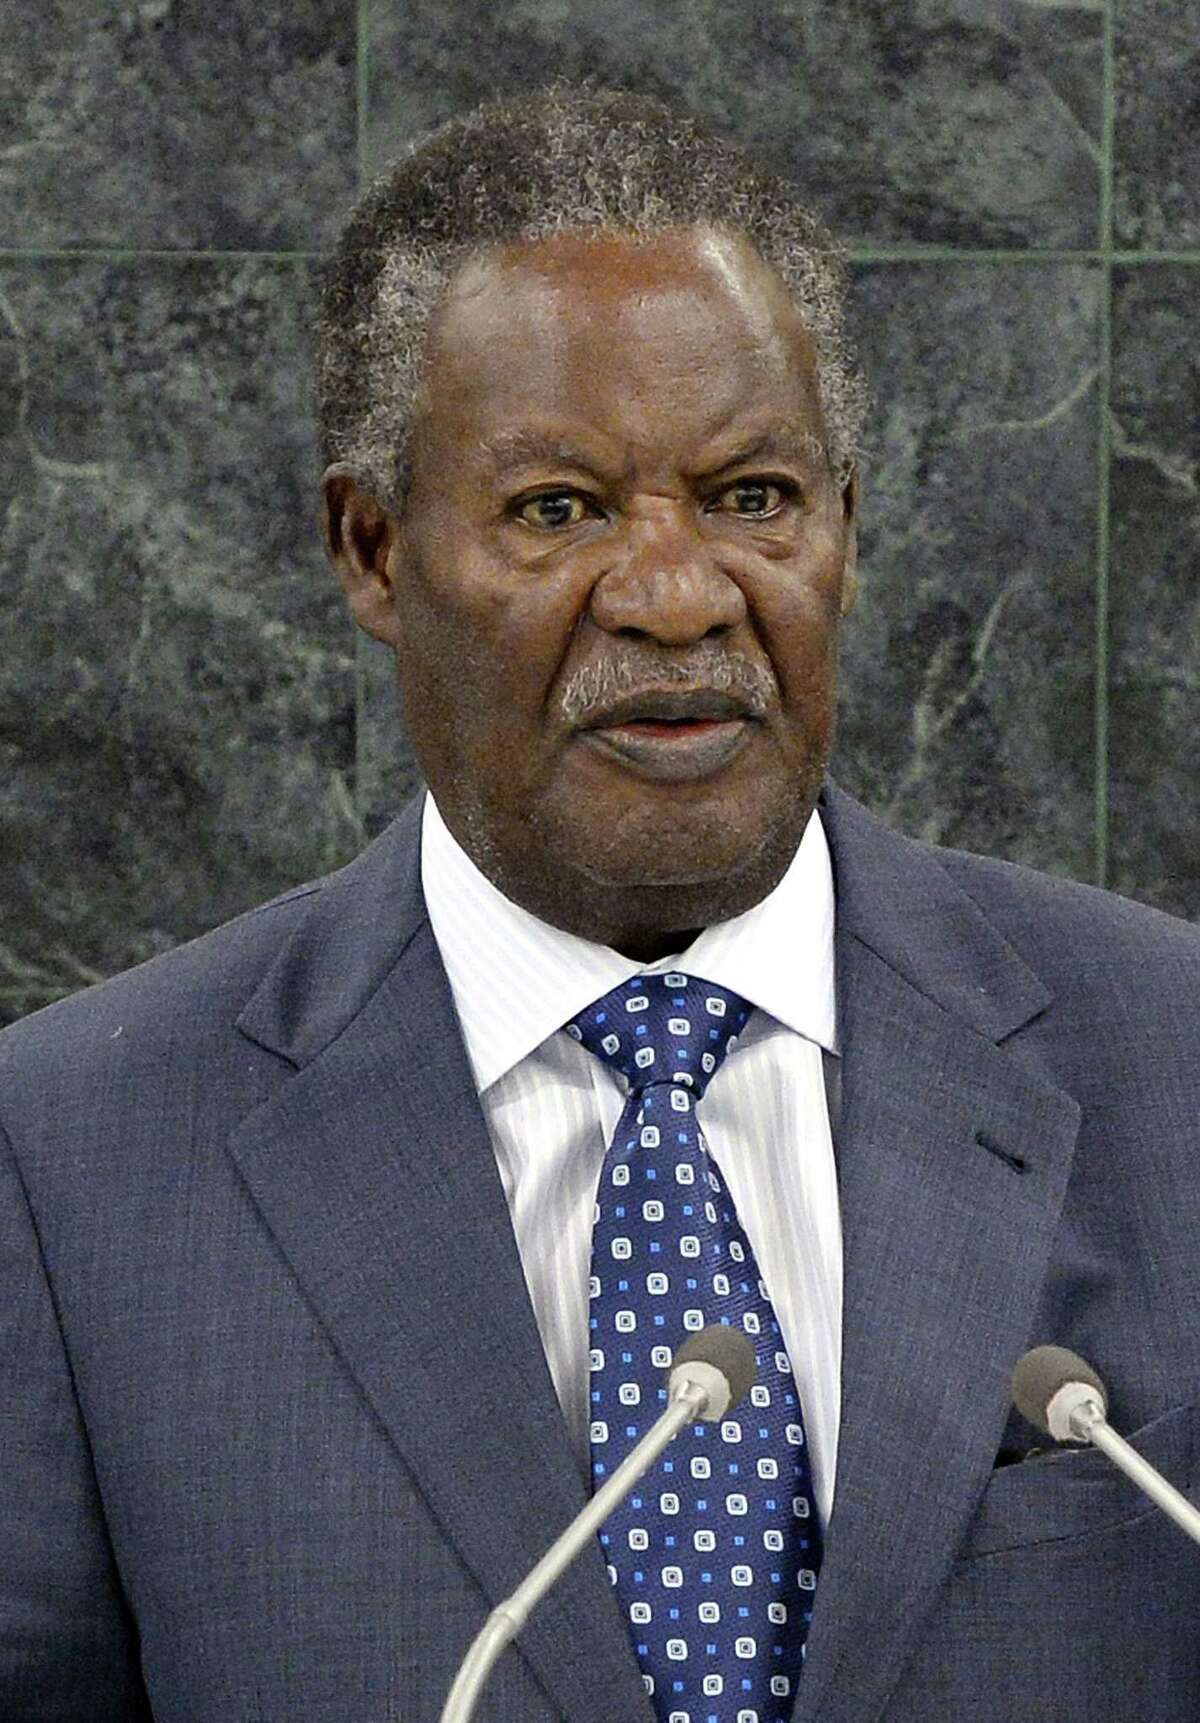 FILE - In this Sept. 24, 2013 file photo, Zambian President Michael Sata speaks during the general debate of the 68th session of the United Nations General Assembly at United Nations headquarters. Sata died Tuesday, Oct. 28, 2014 after an illness, the Zambian government said Wednesday, Oct. 29. The Cabinet held a meeting to discuss a political transition in the southern African nation in the wake of the president's death. He was 77. (AP Photo/Justin Lane, Pool, File)